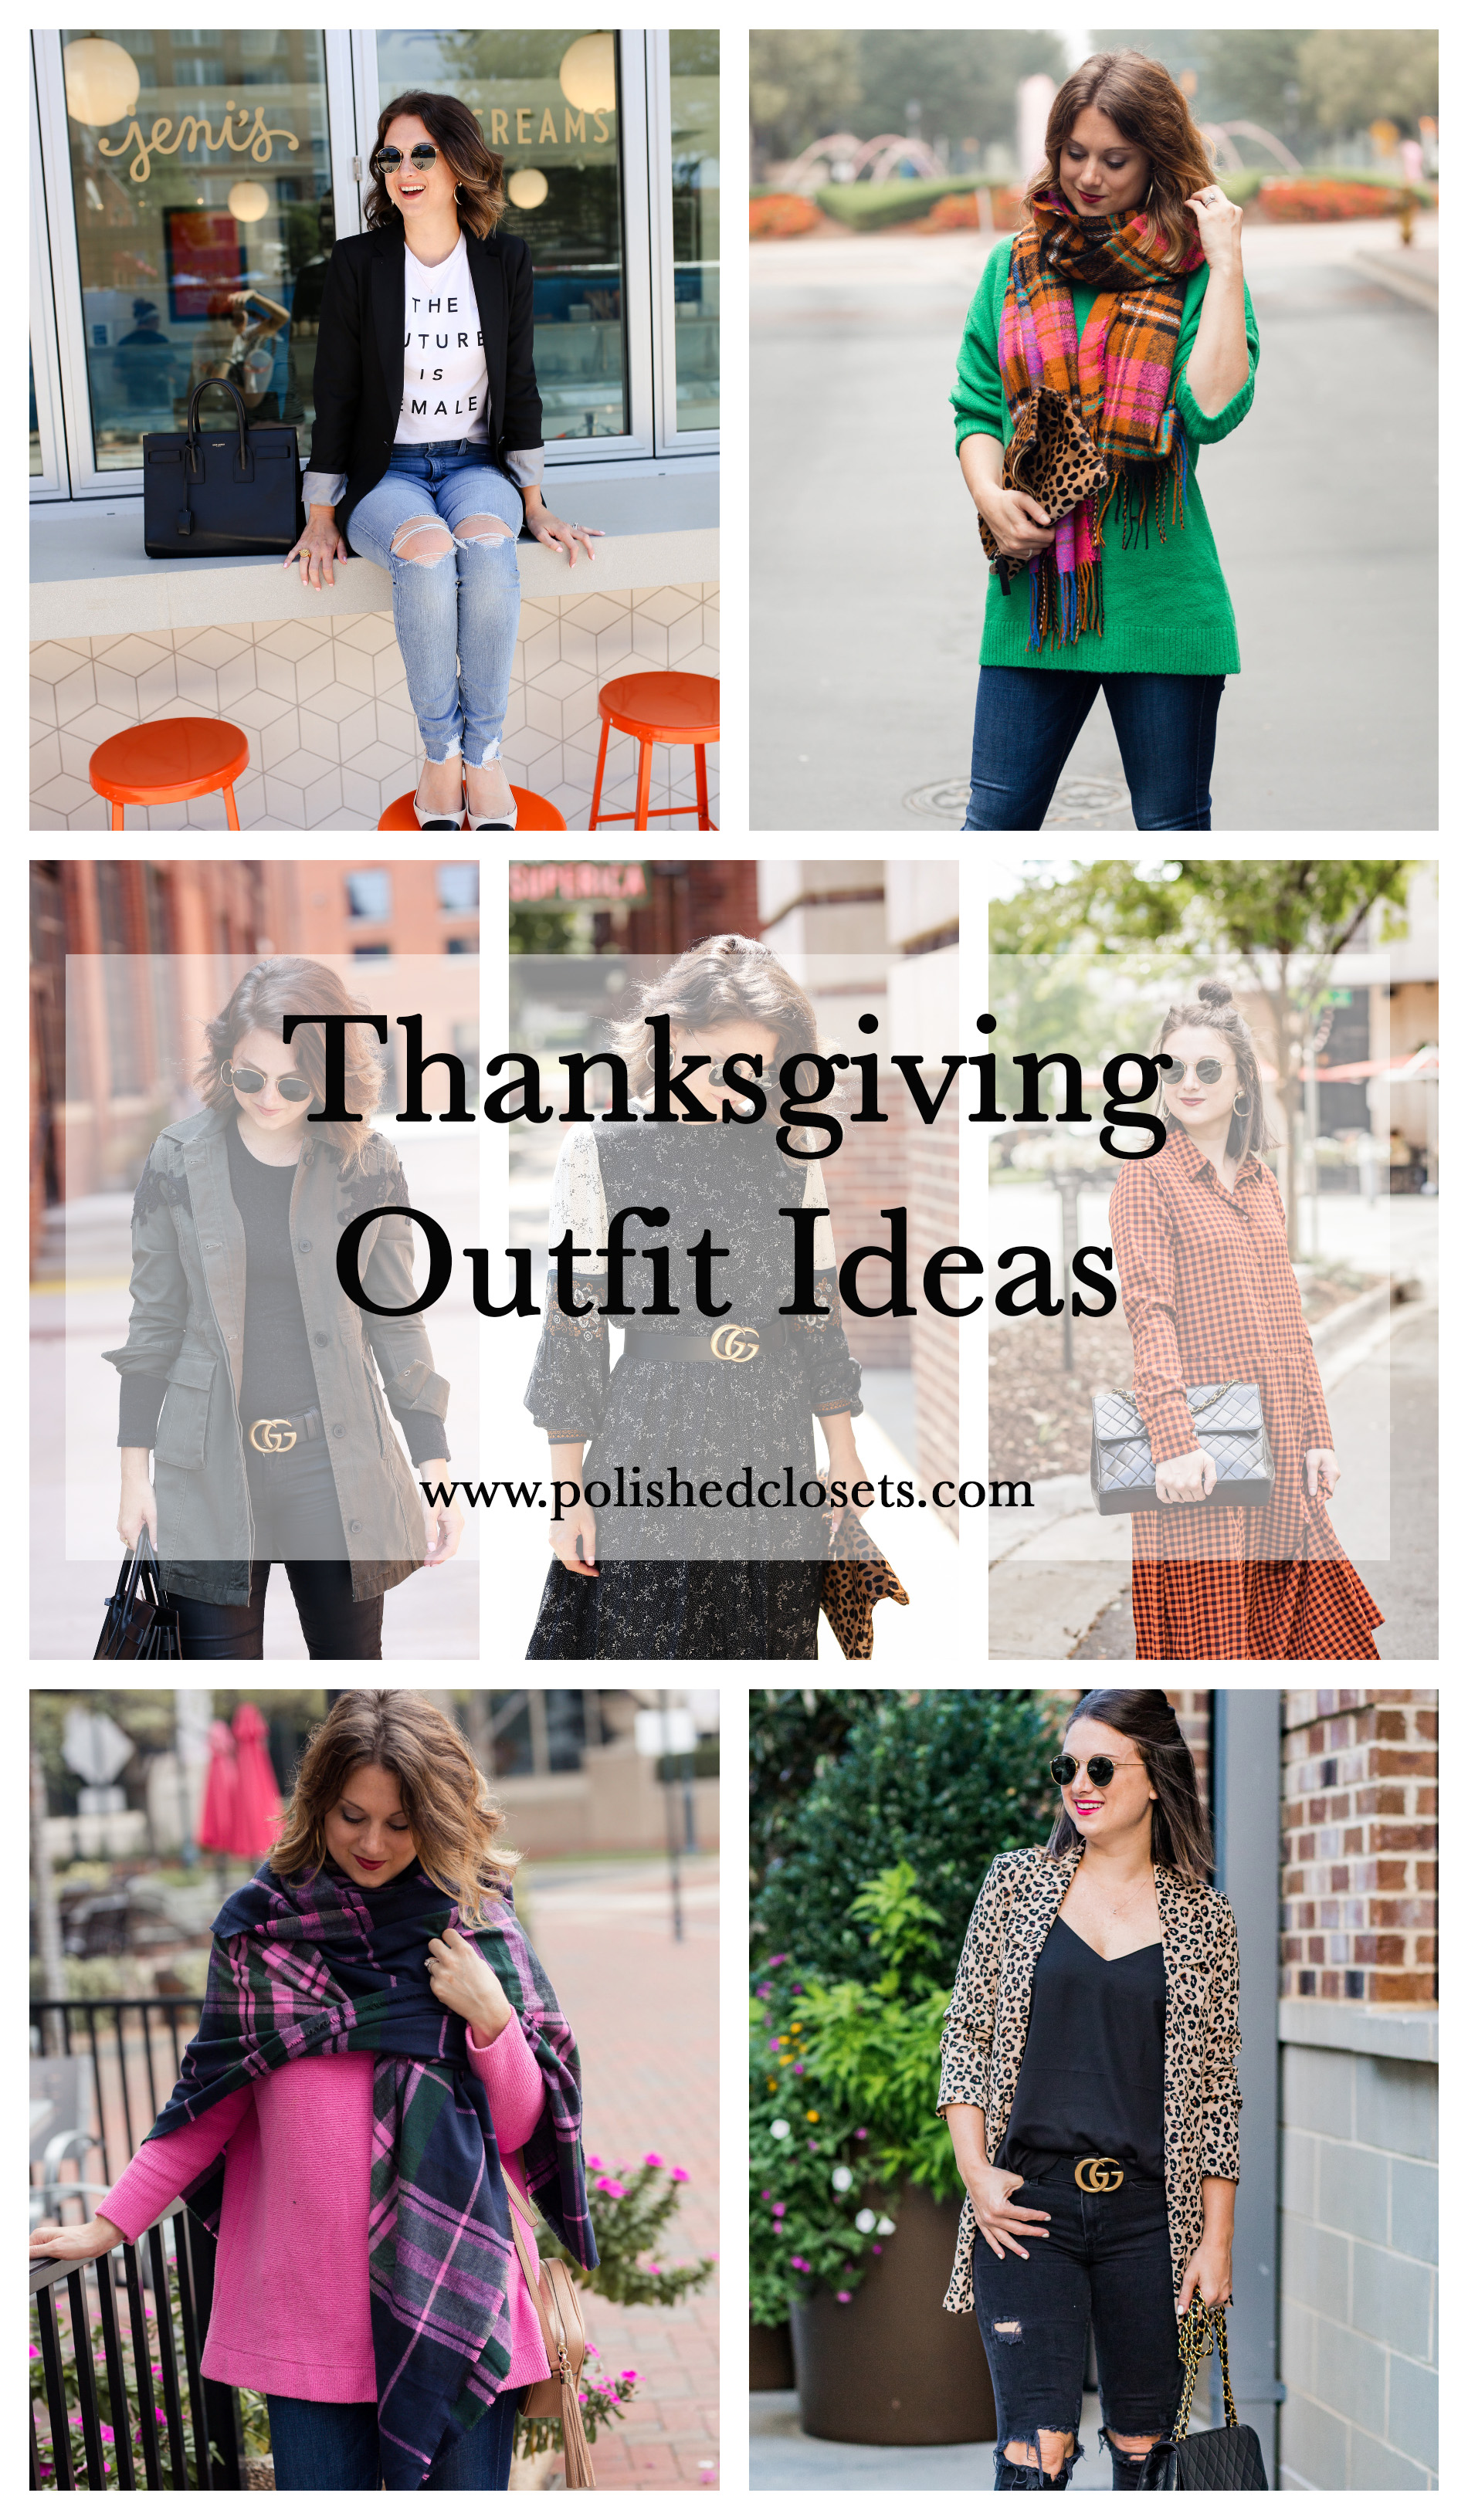 9a86e71049a Thanksgiving Outfit Ideas - Polished Closets